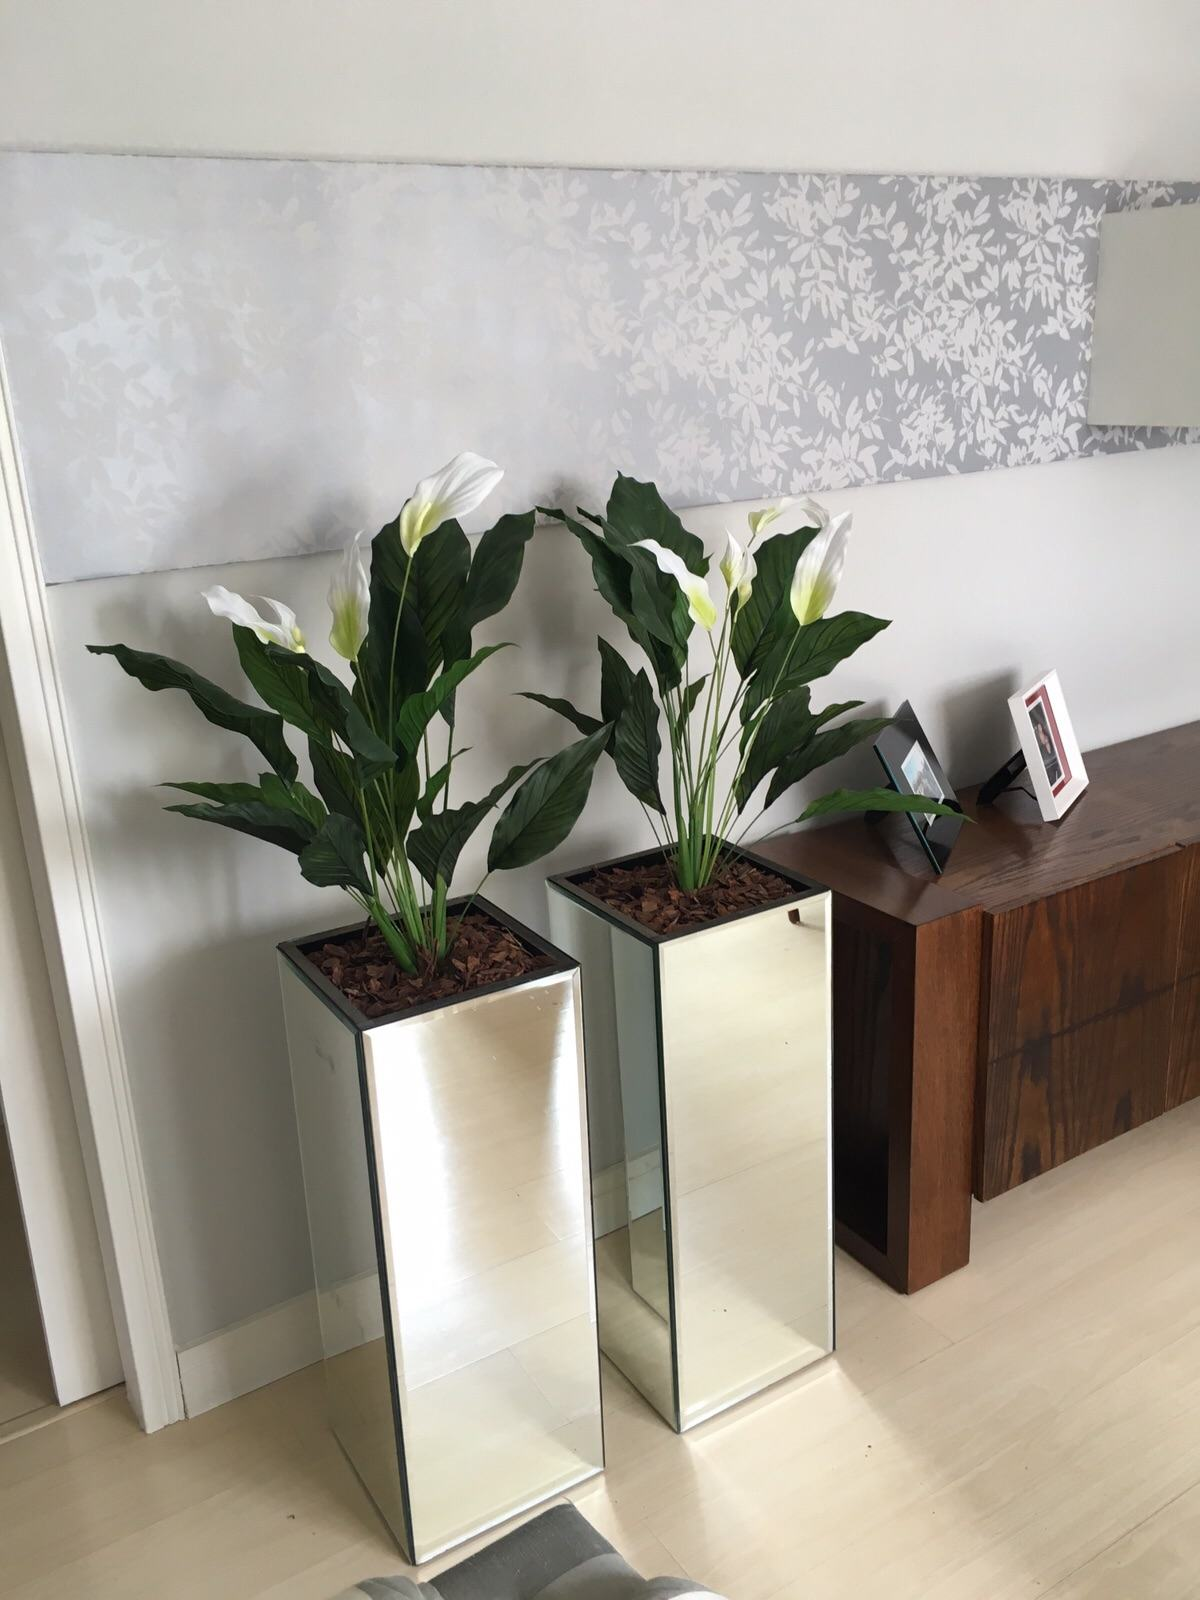 Plantas artificiais decorativas para interiores jet dicas for Plantas decorativas de interior